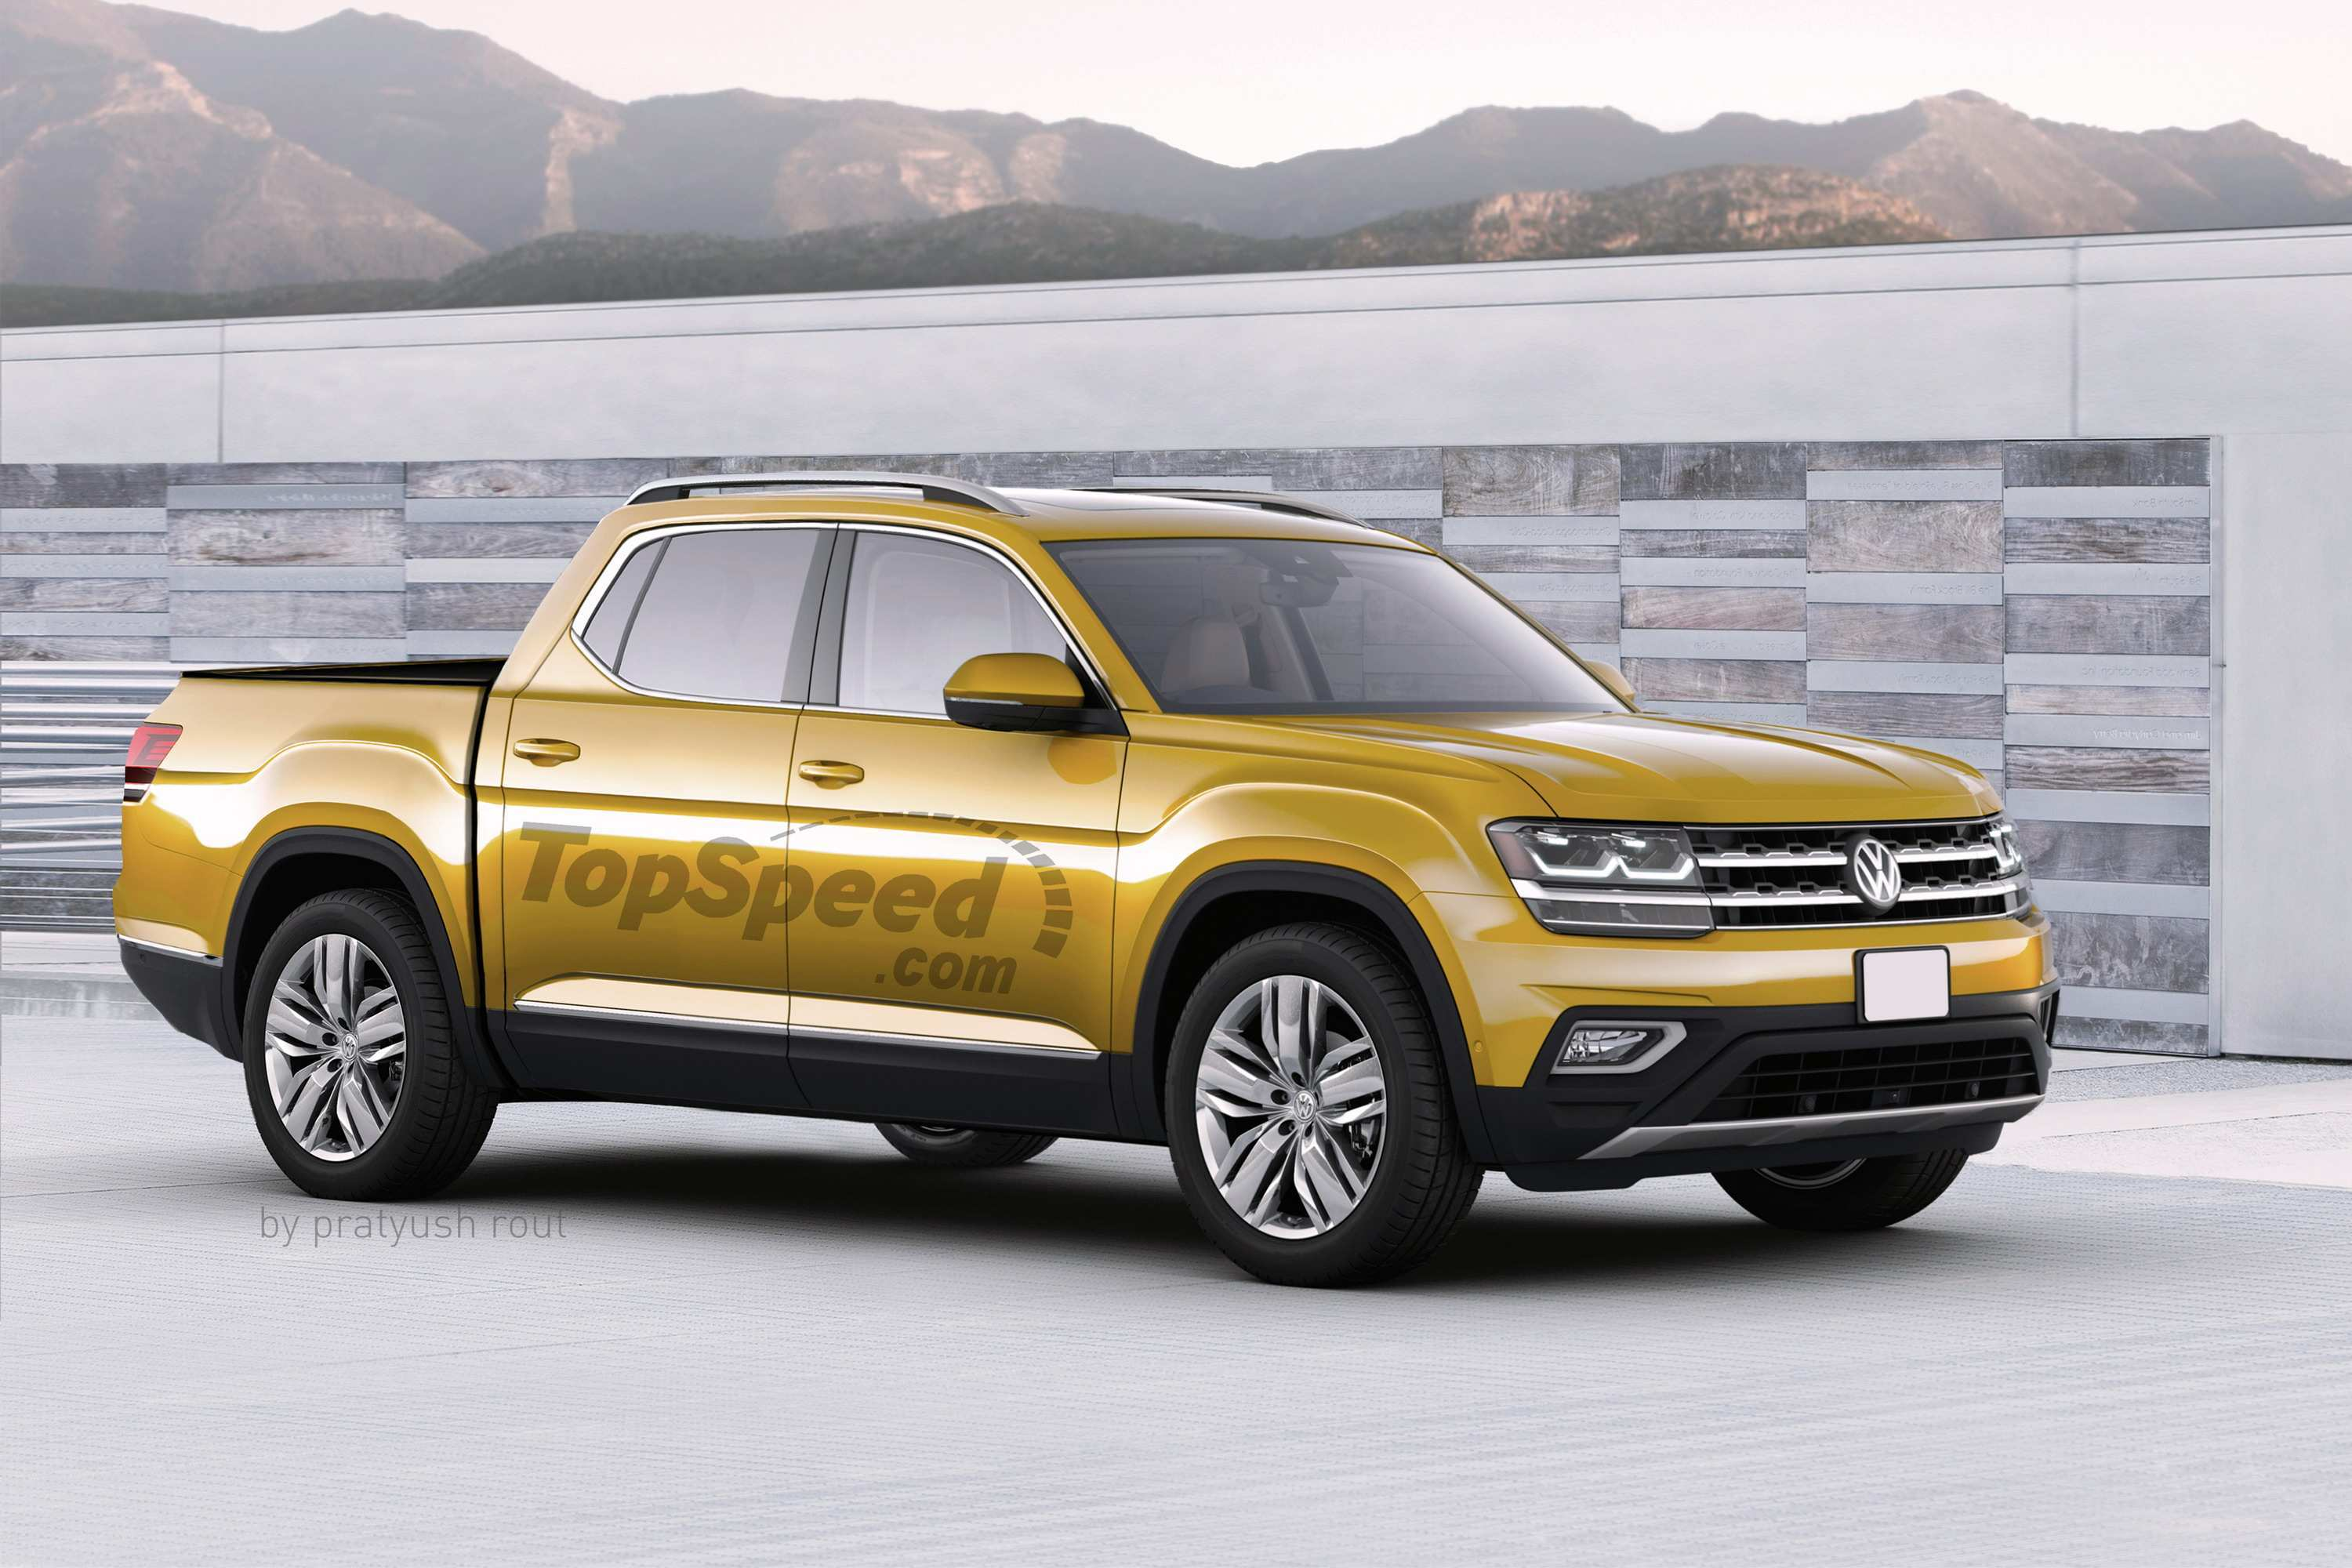 59 Great 2019 Volkswagen Pickup Truck Picture with 2019 Volkswagen Pickup Truck